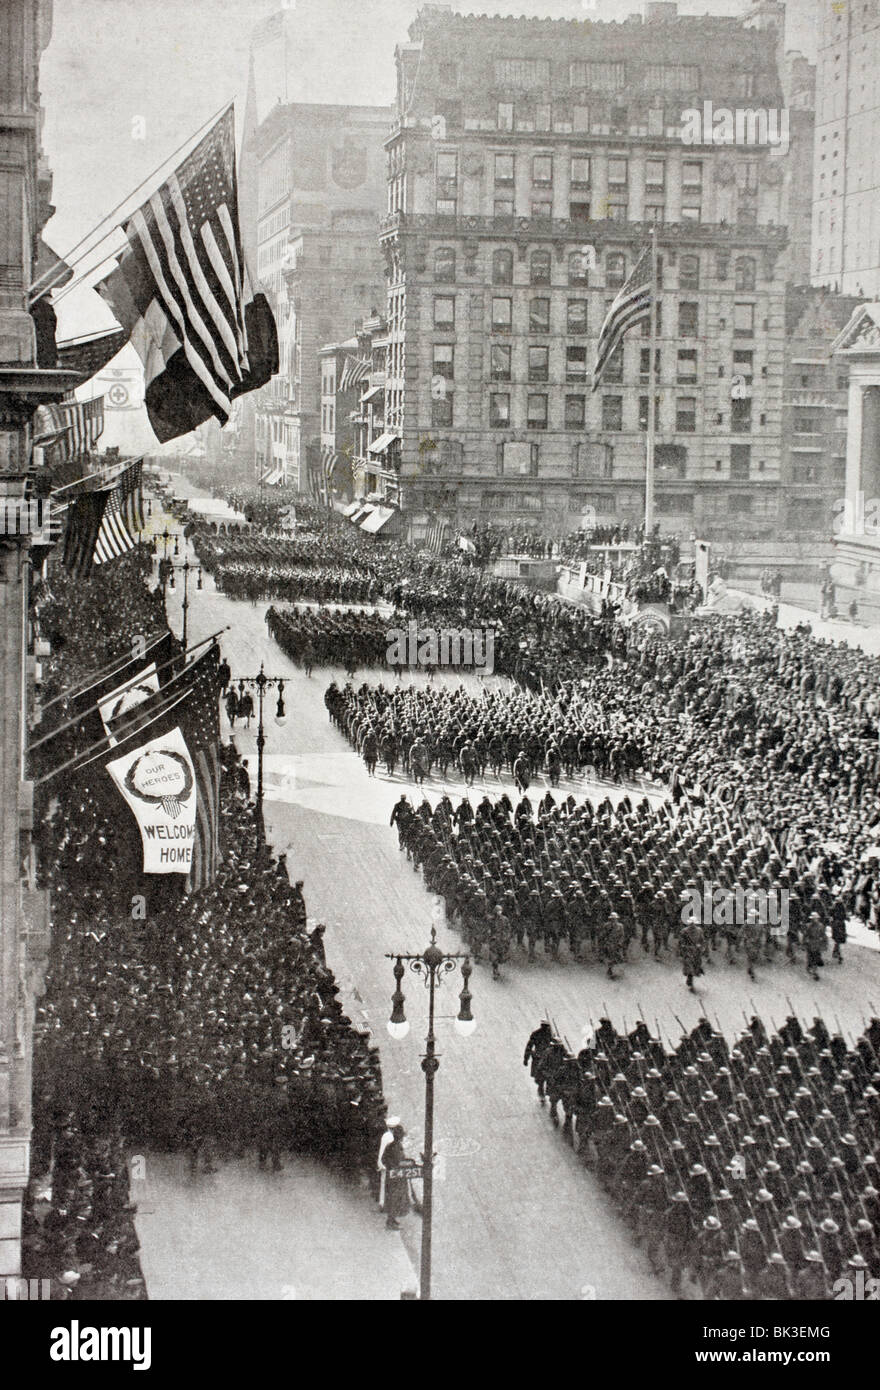 American troops marching down Fifth Avenue in New York on their return from Europe after the First World War. - Stock Image